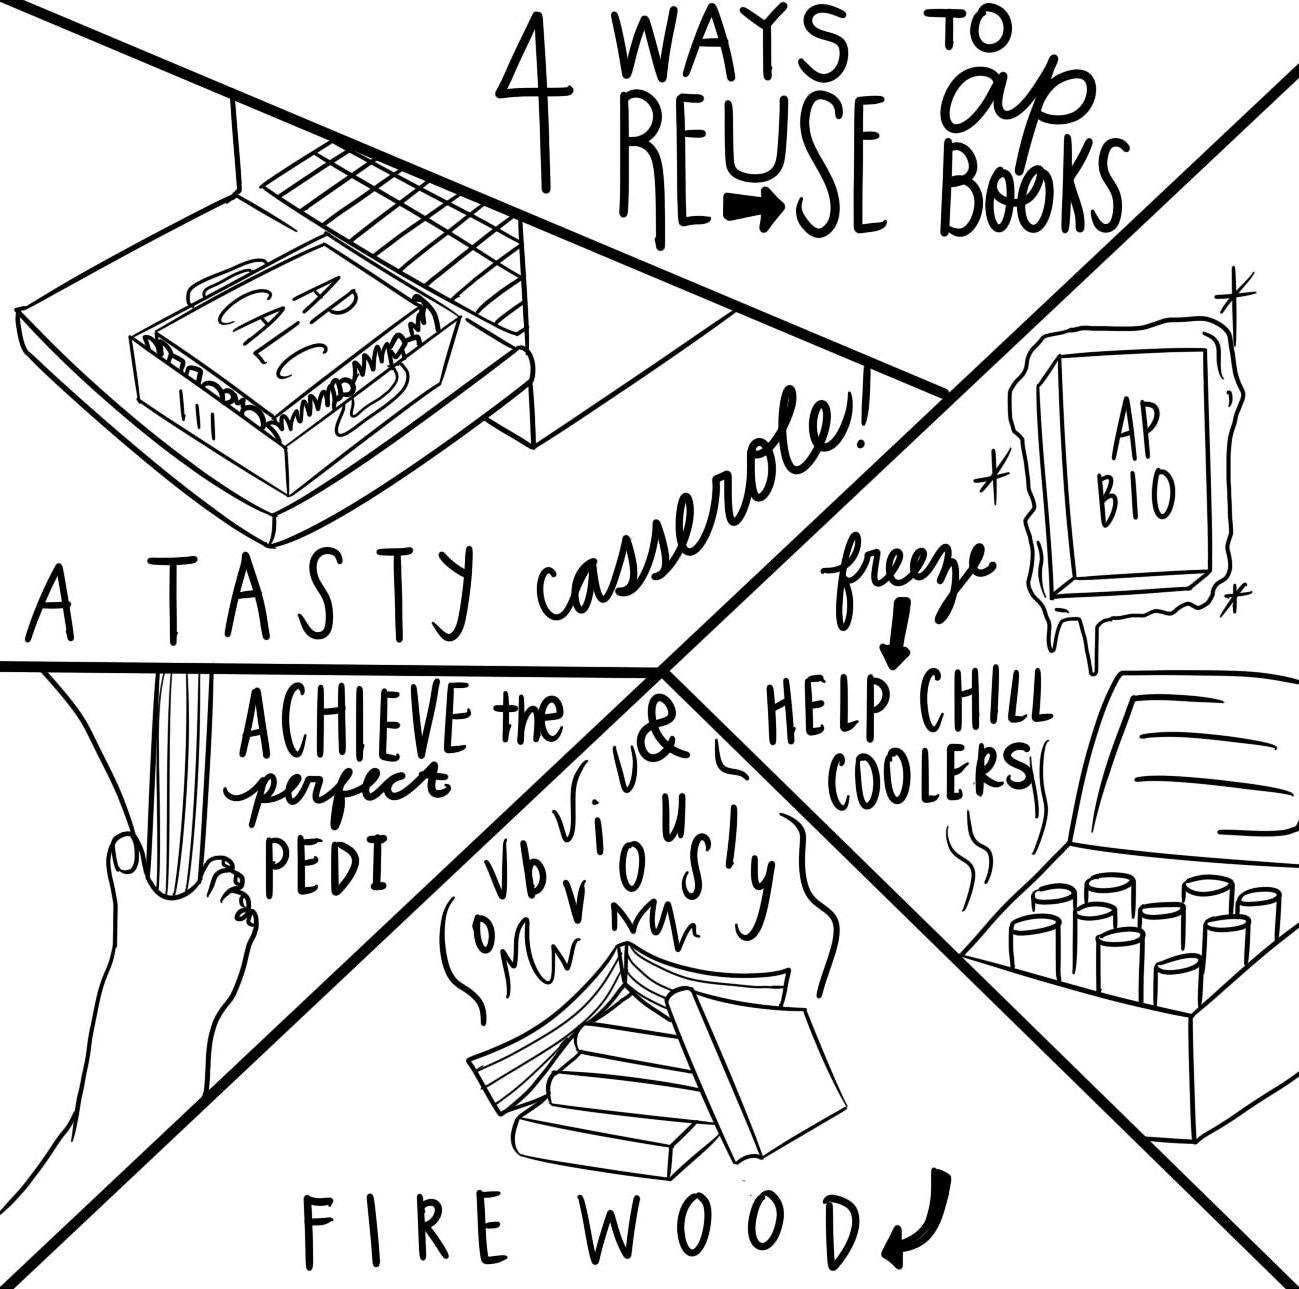 Four ways to use old AP books